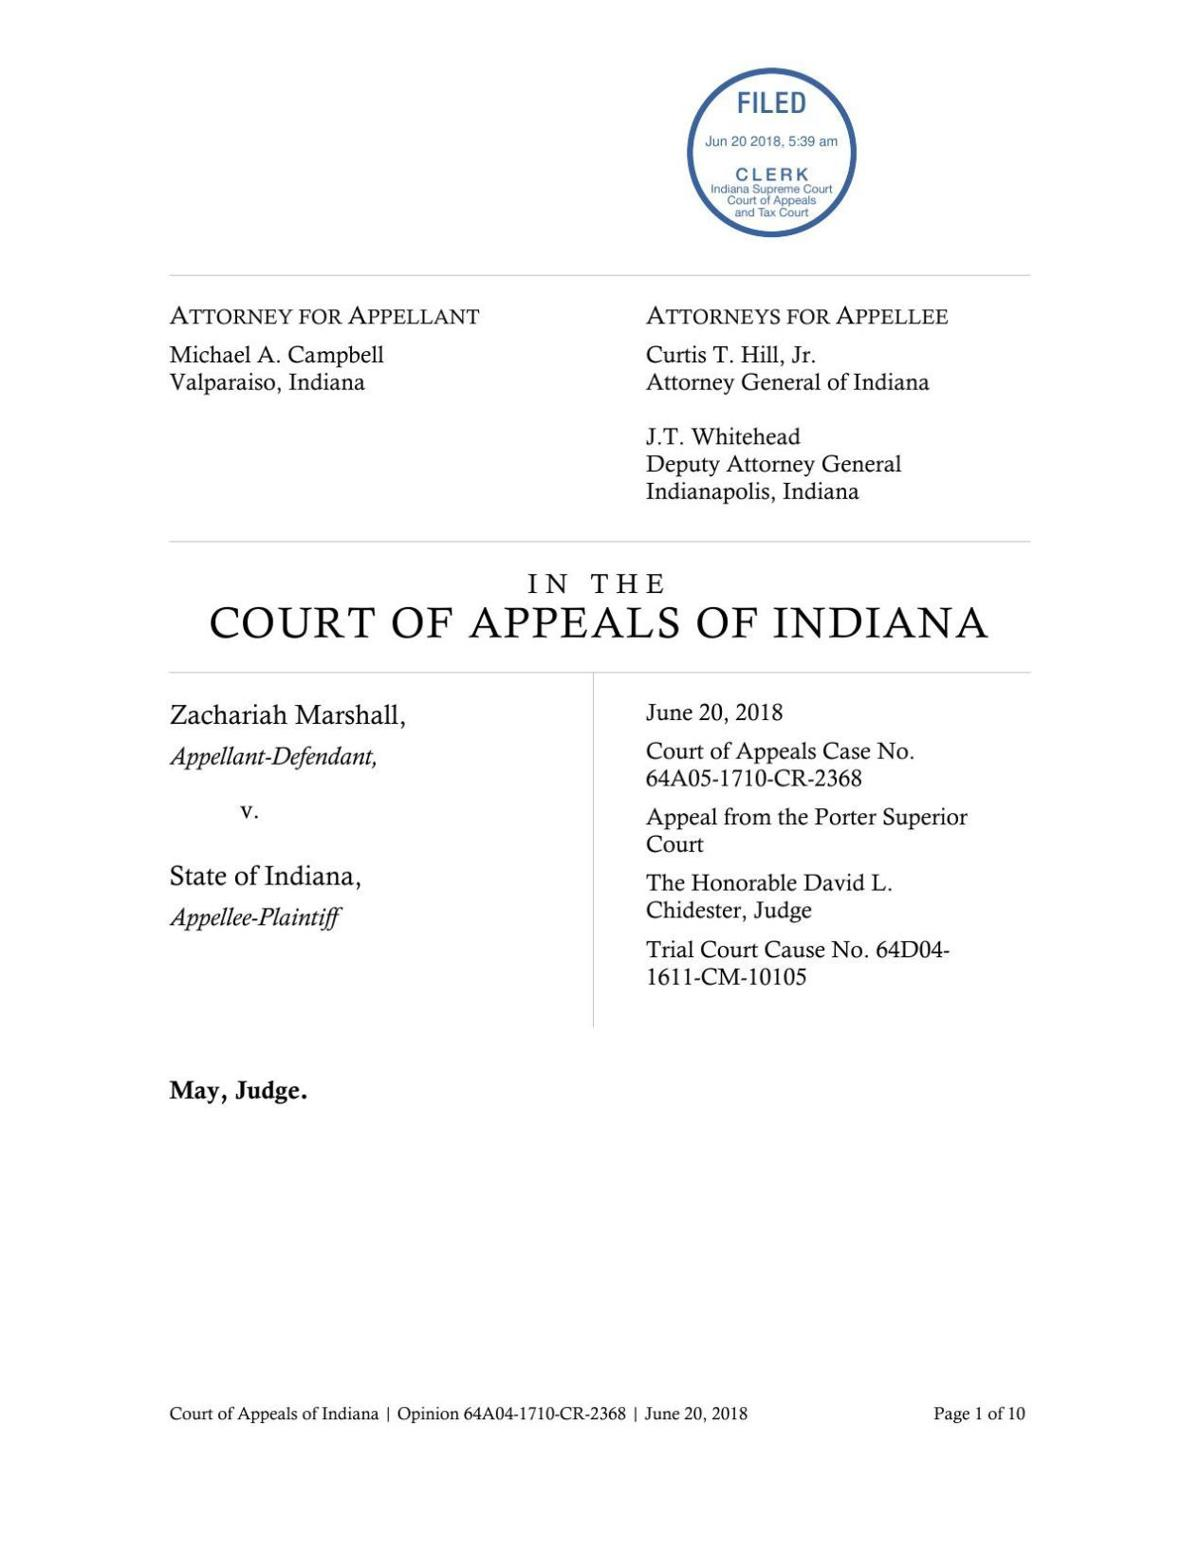 Marshall v. State ruling of Indiana Court of Appeals